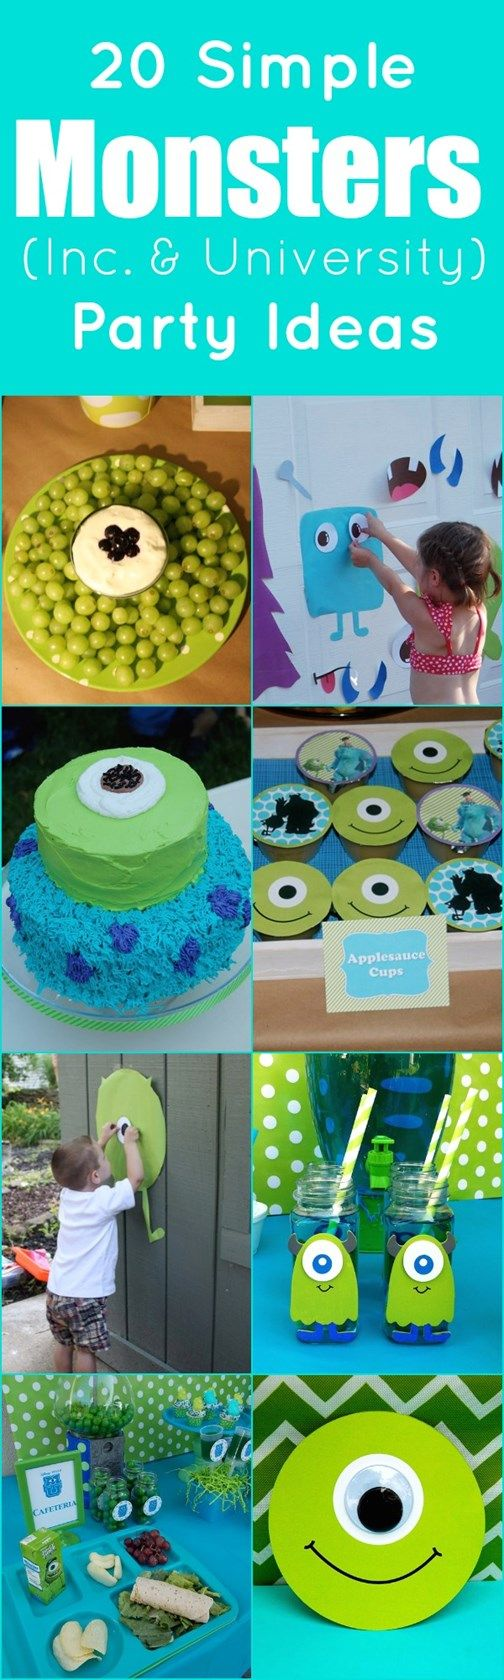 We Heart Parties: 20 Simple Monsters Inc and University Party Ideas